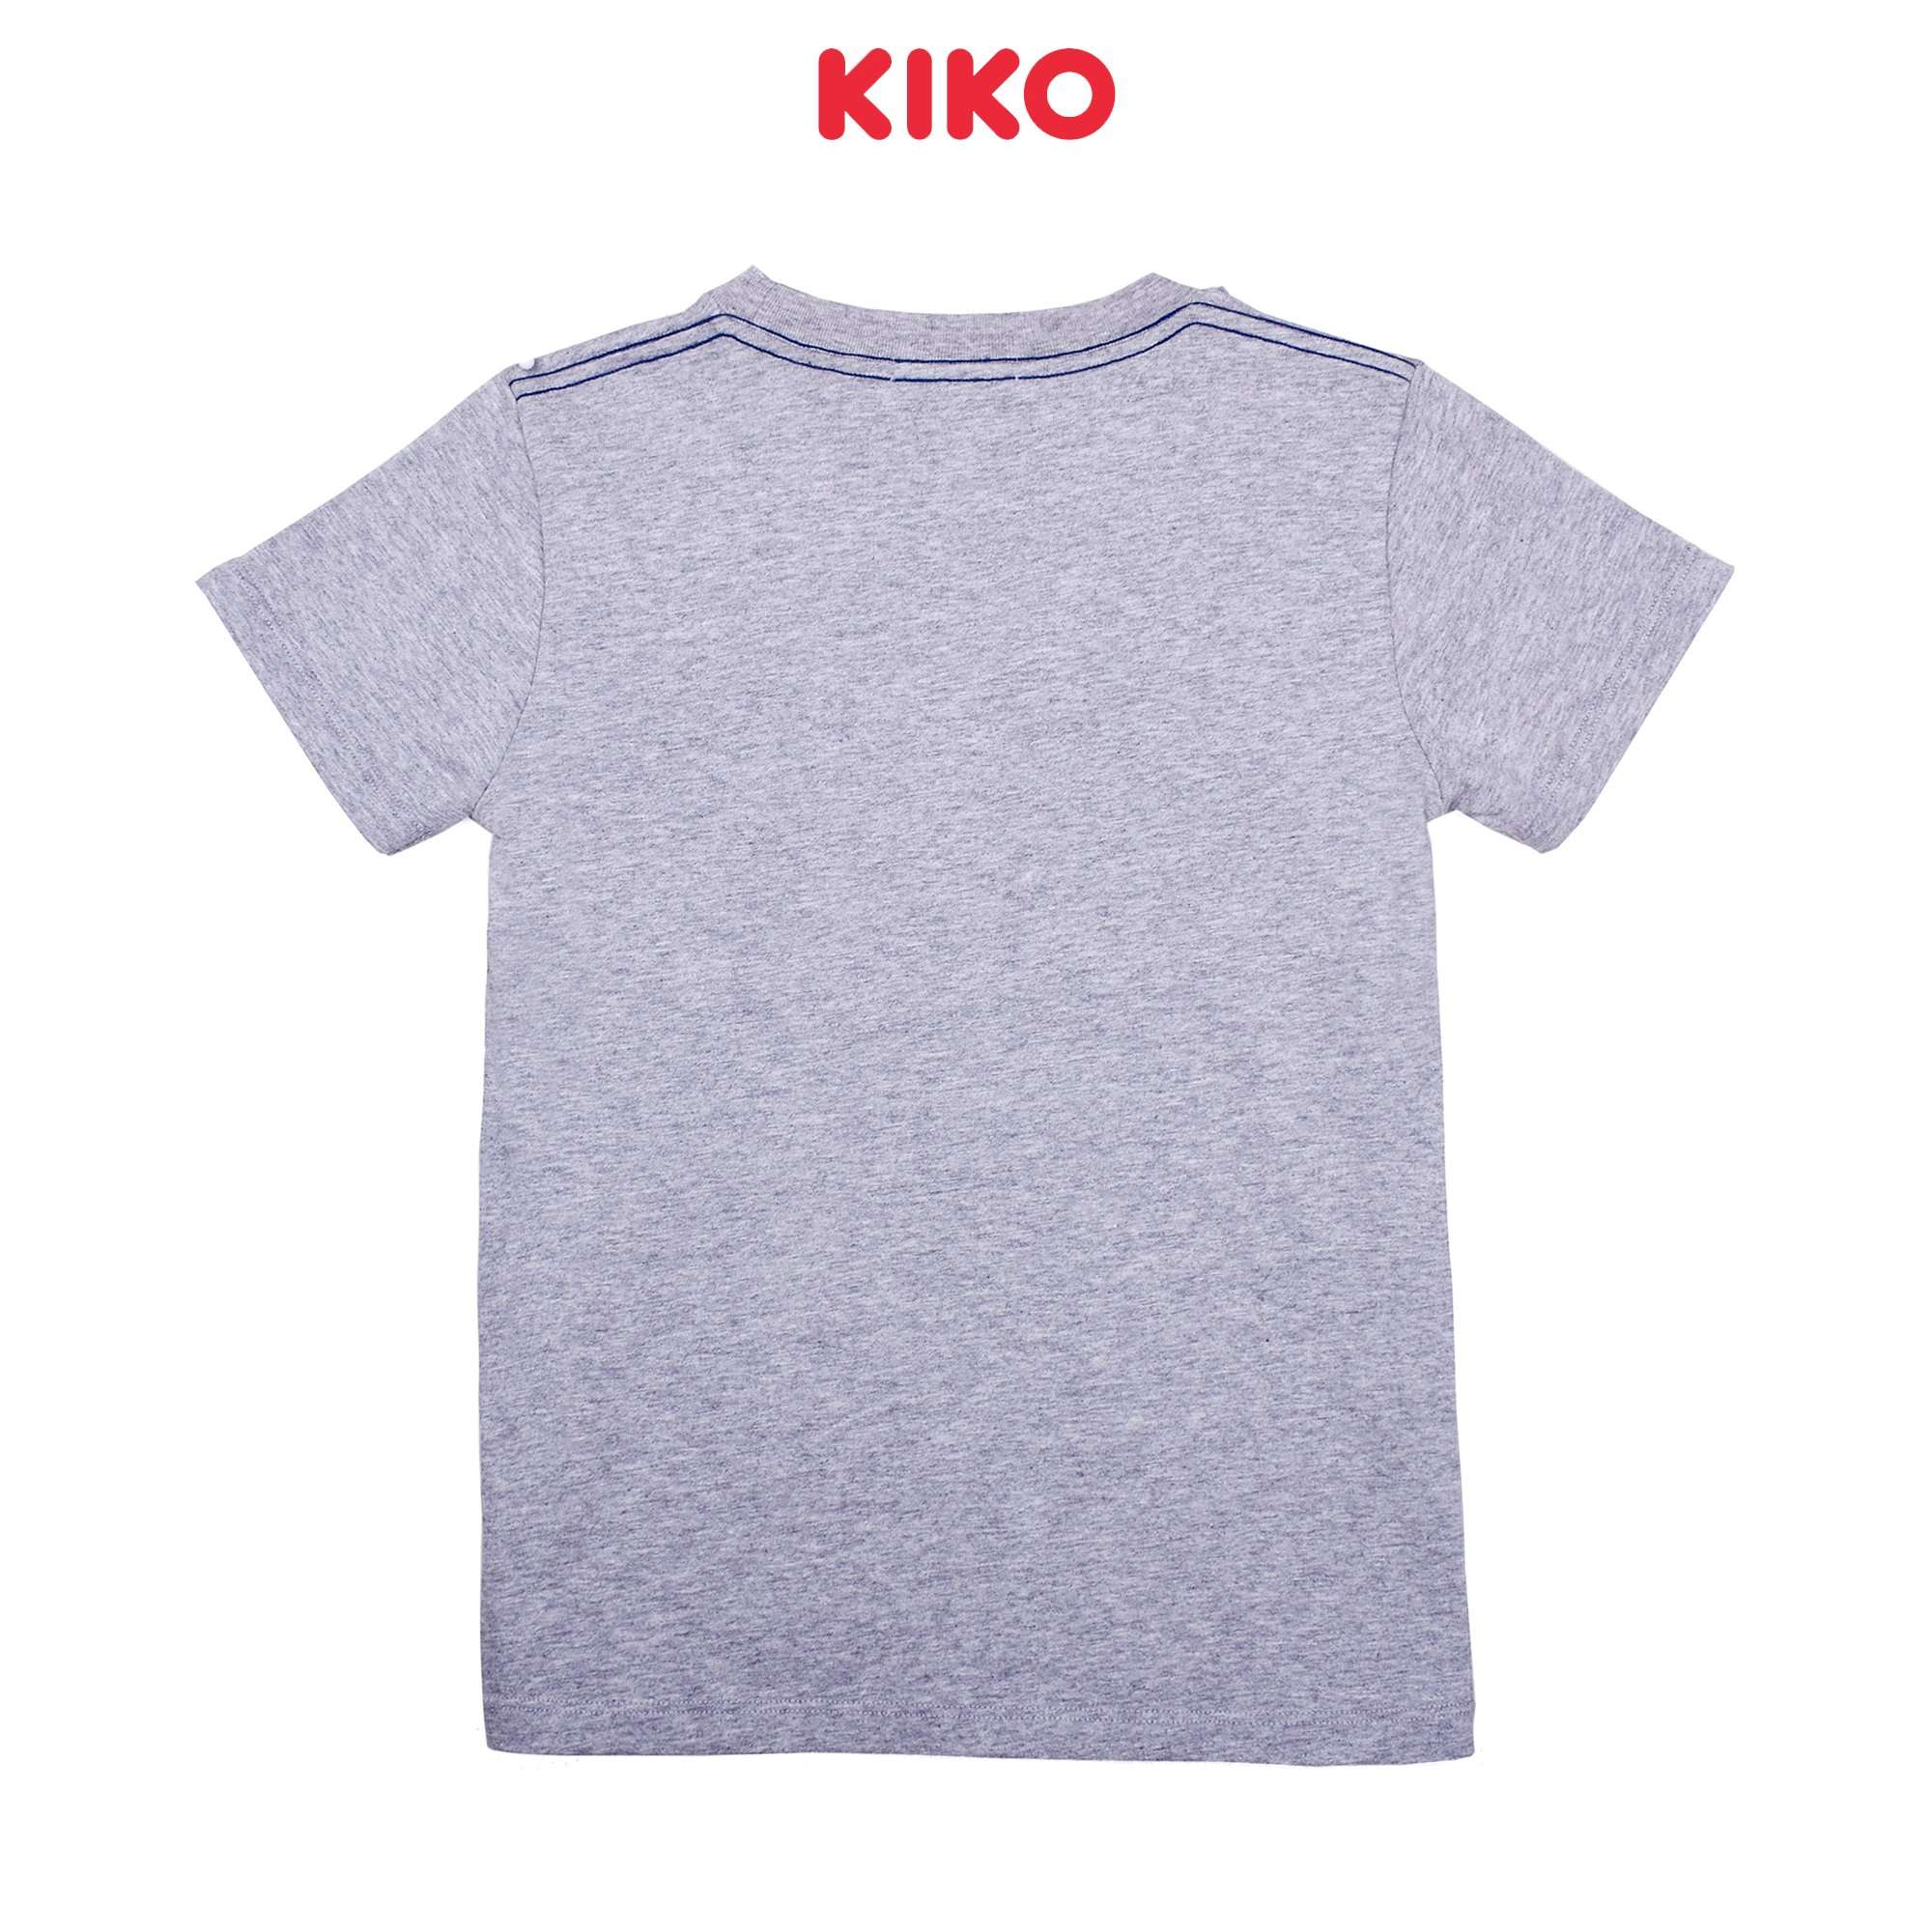 KIKO Boy Short Sleeve Tee - Grey  K923103-1117-G5 : Buy KIKO online at CMG.MY